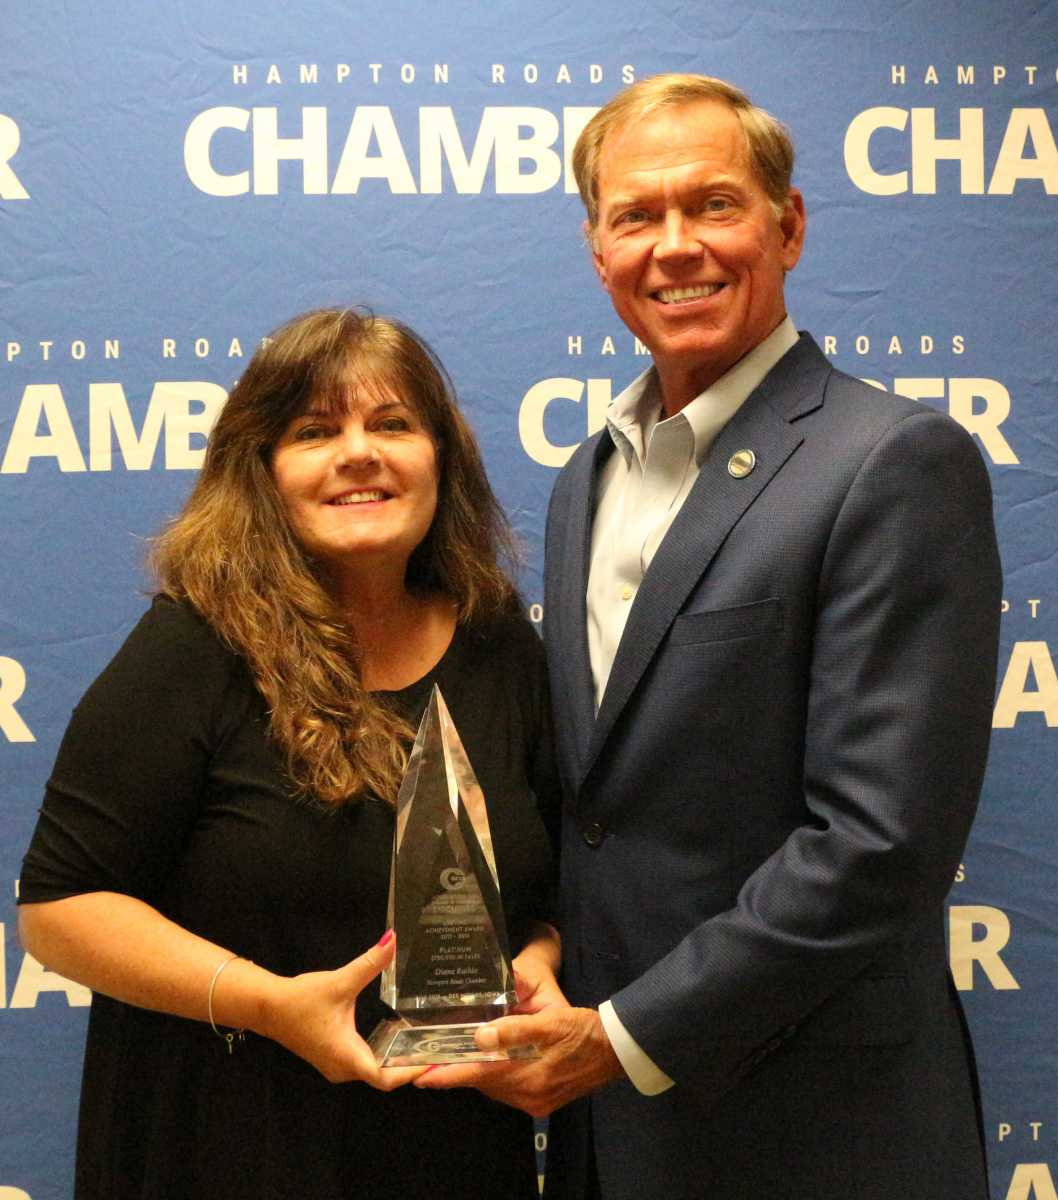 Hampton Roads Chamber's own Diane Raihle has been awarded the Prestigious Platinum Level Lifetime Achievement Award